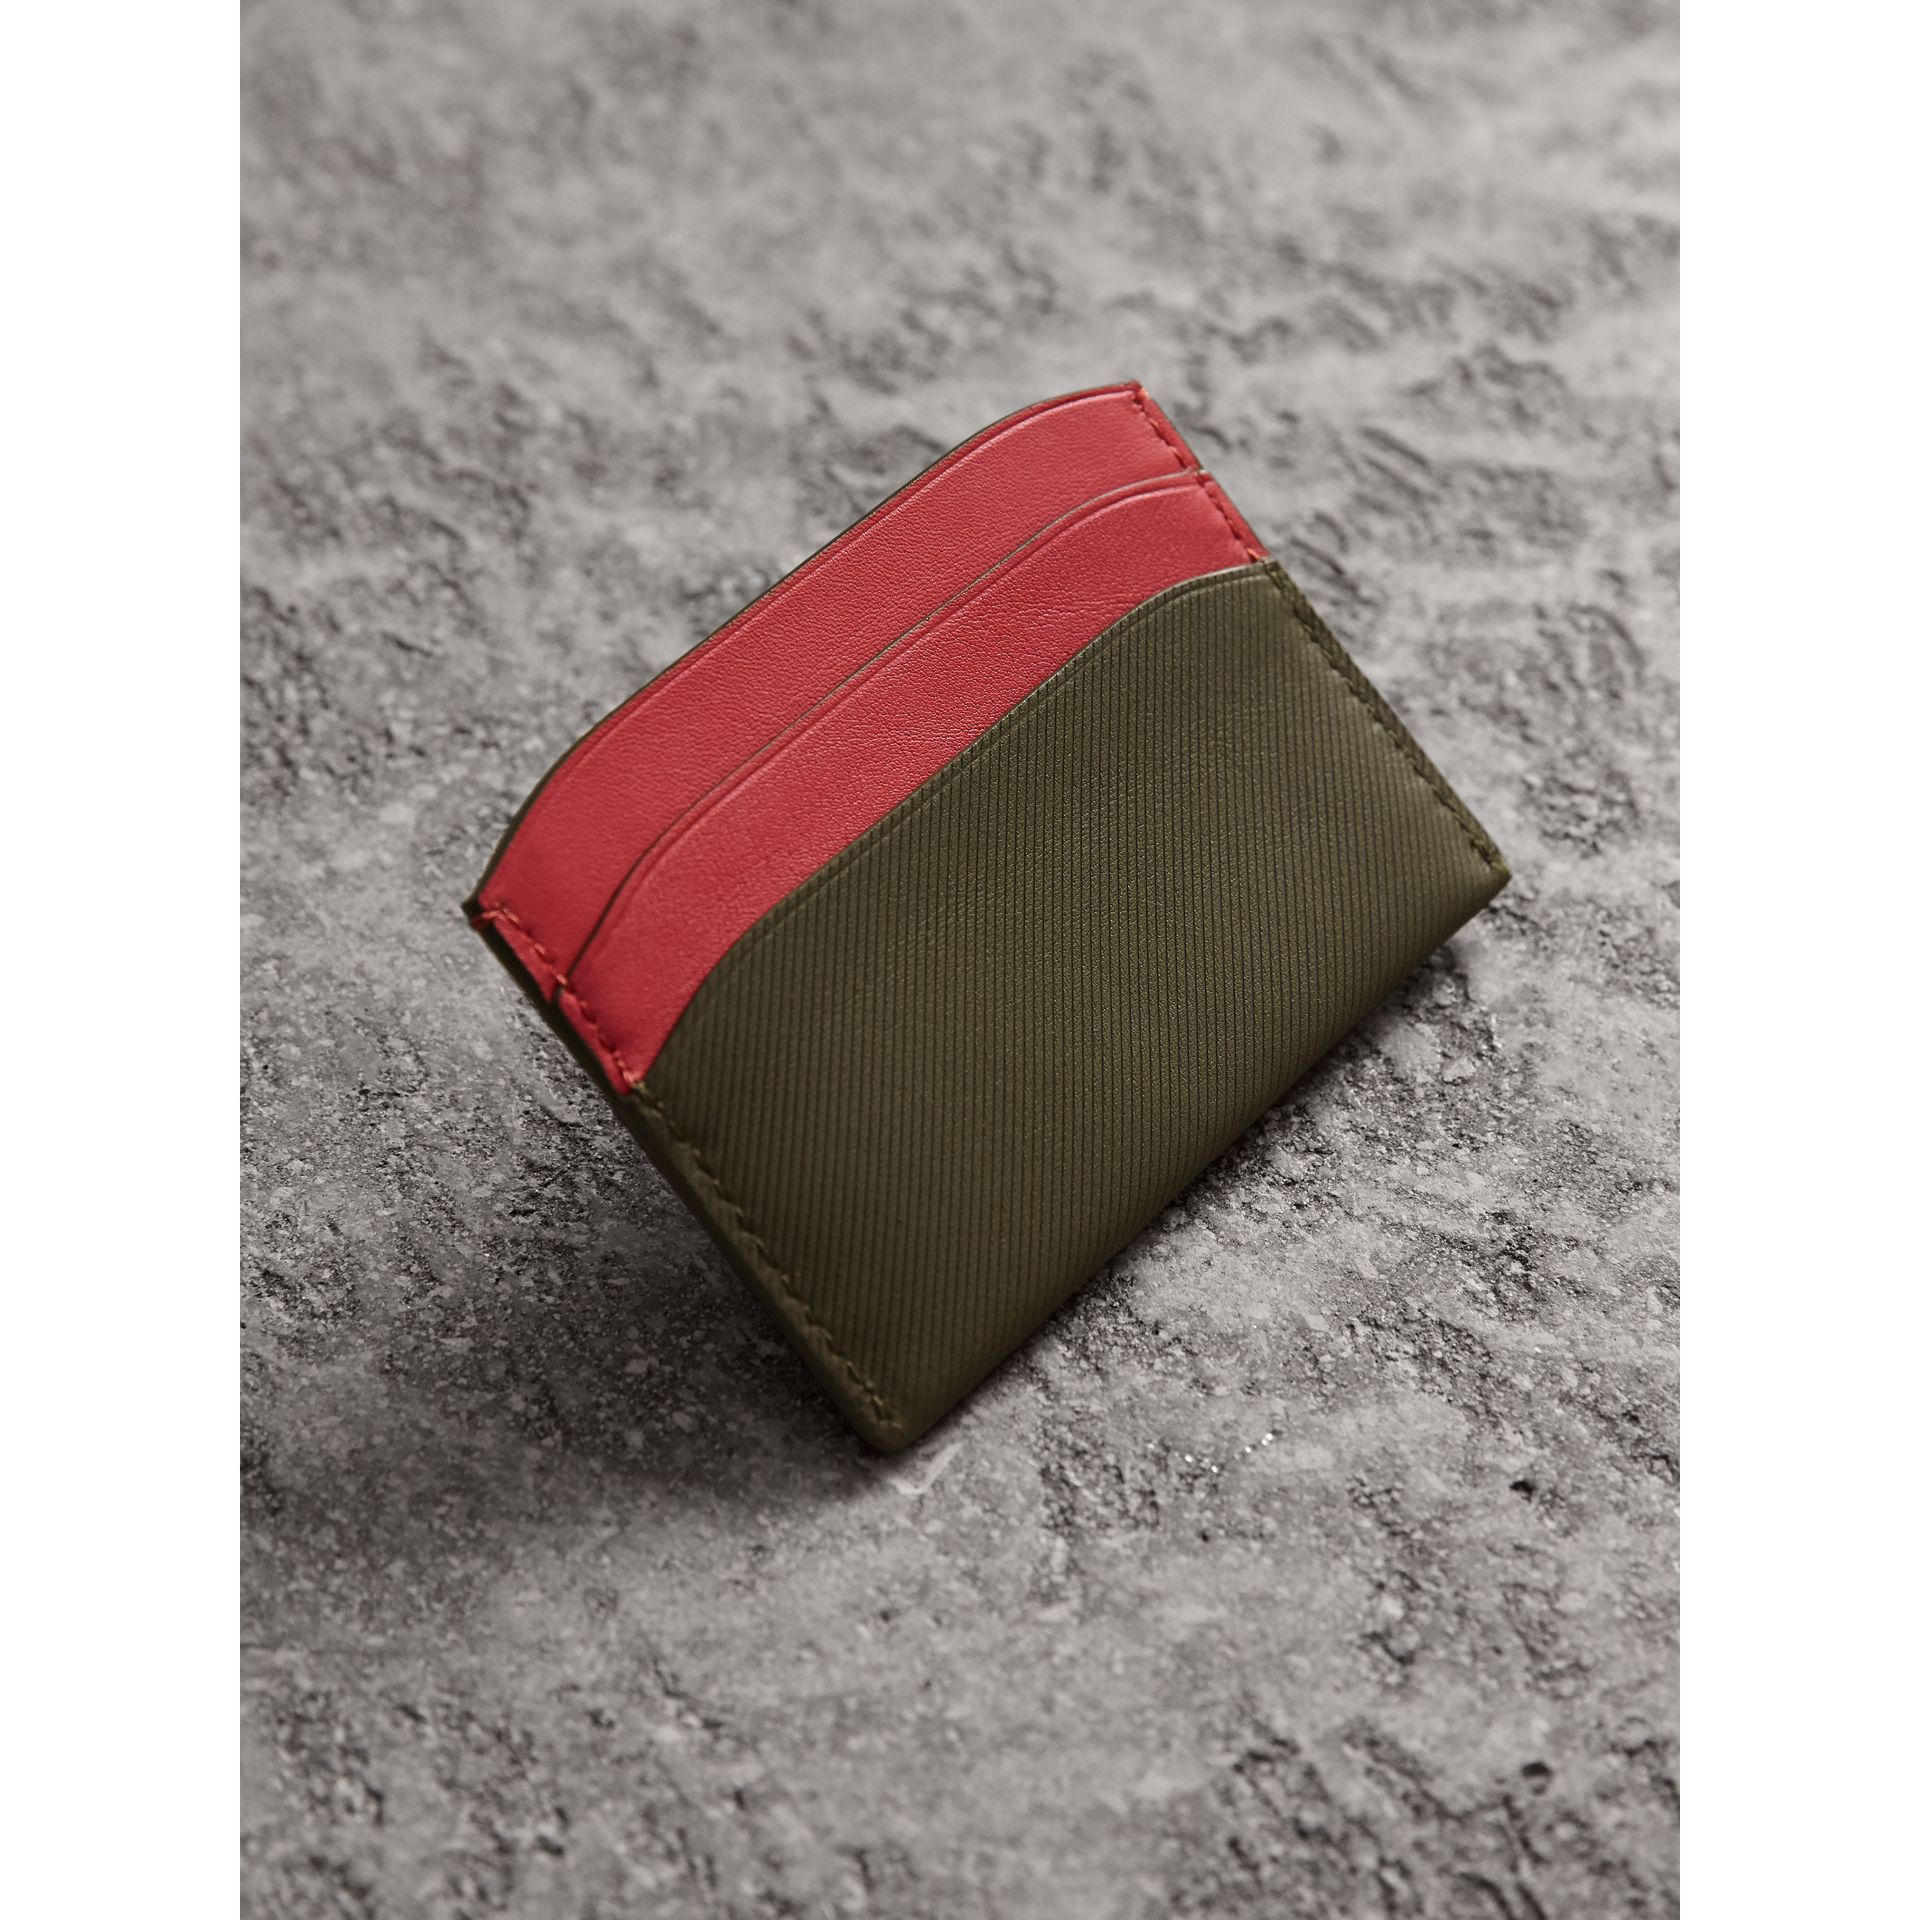 Two-tone Trench Leather Card Case in Mss Green/ Blsm Pink - Women | Burberry - gallery image 2